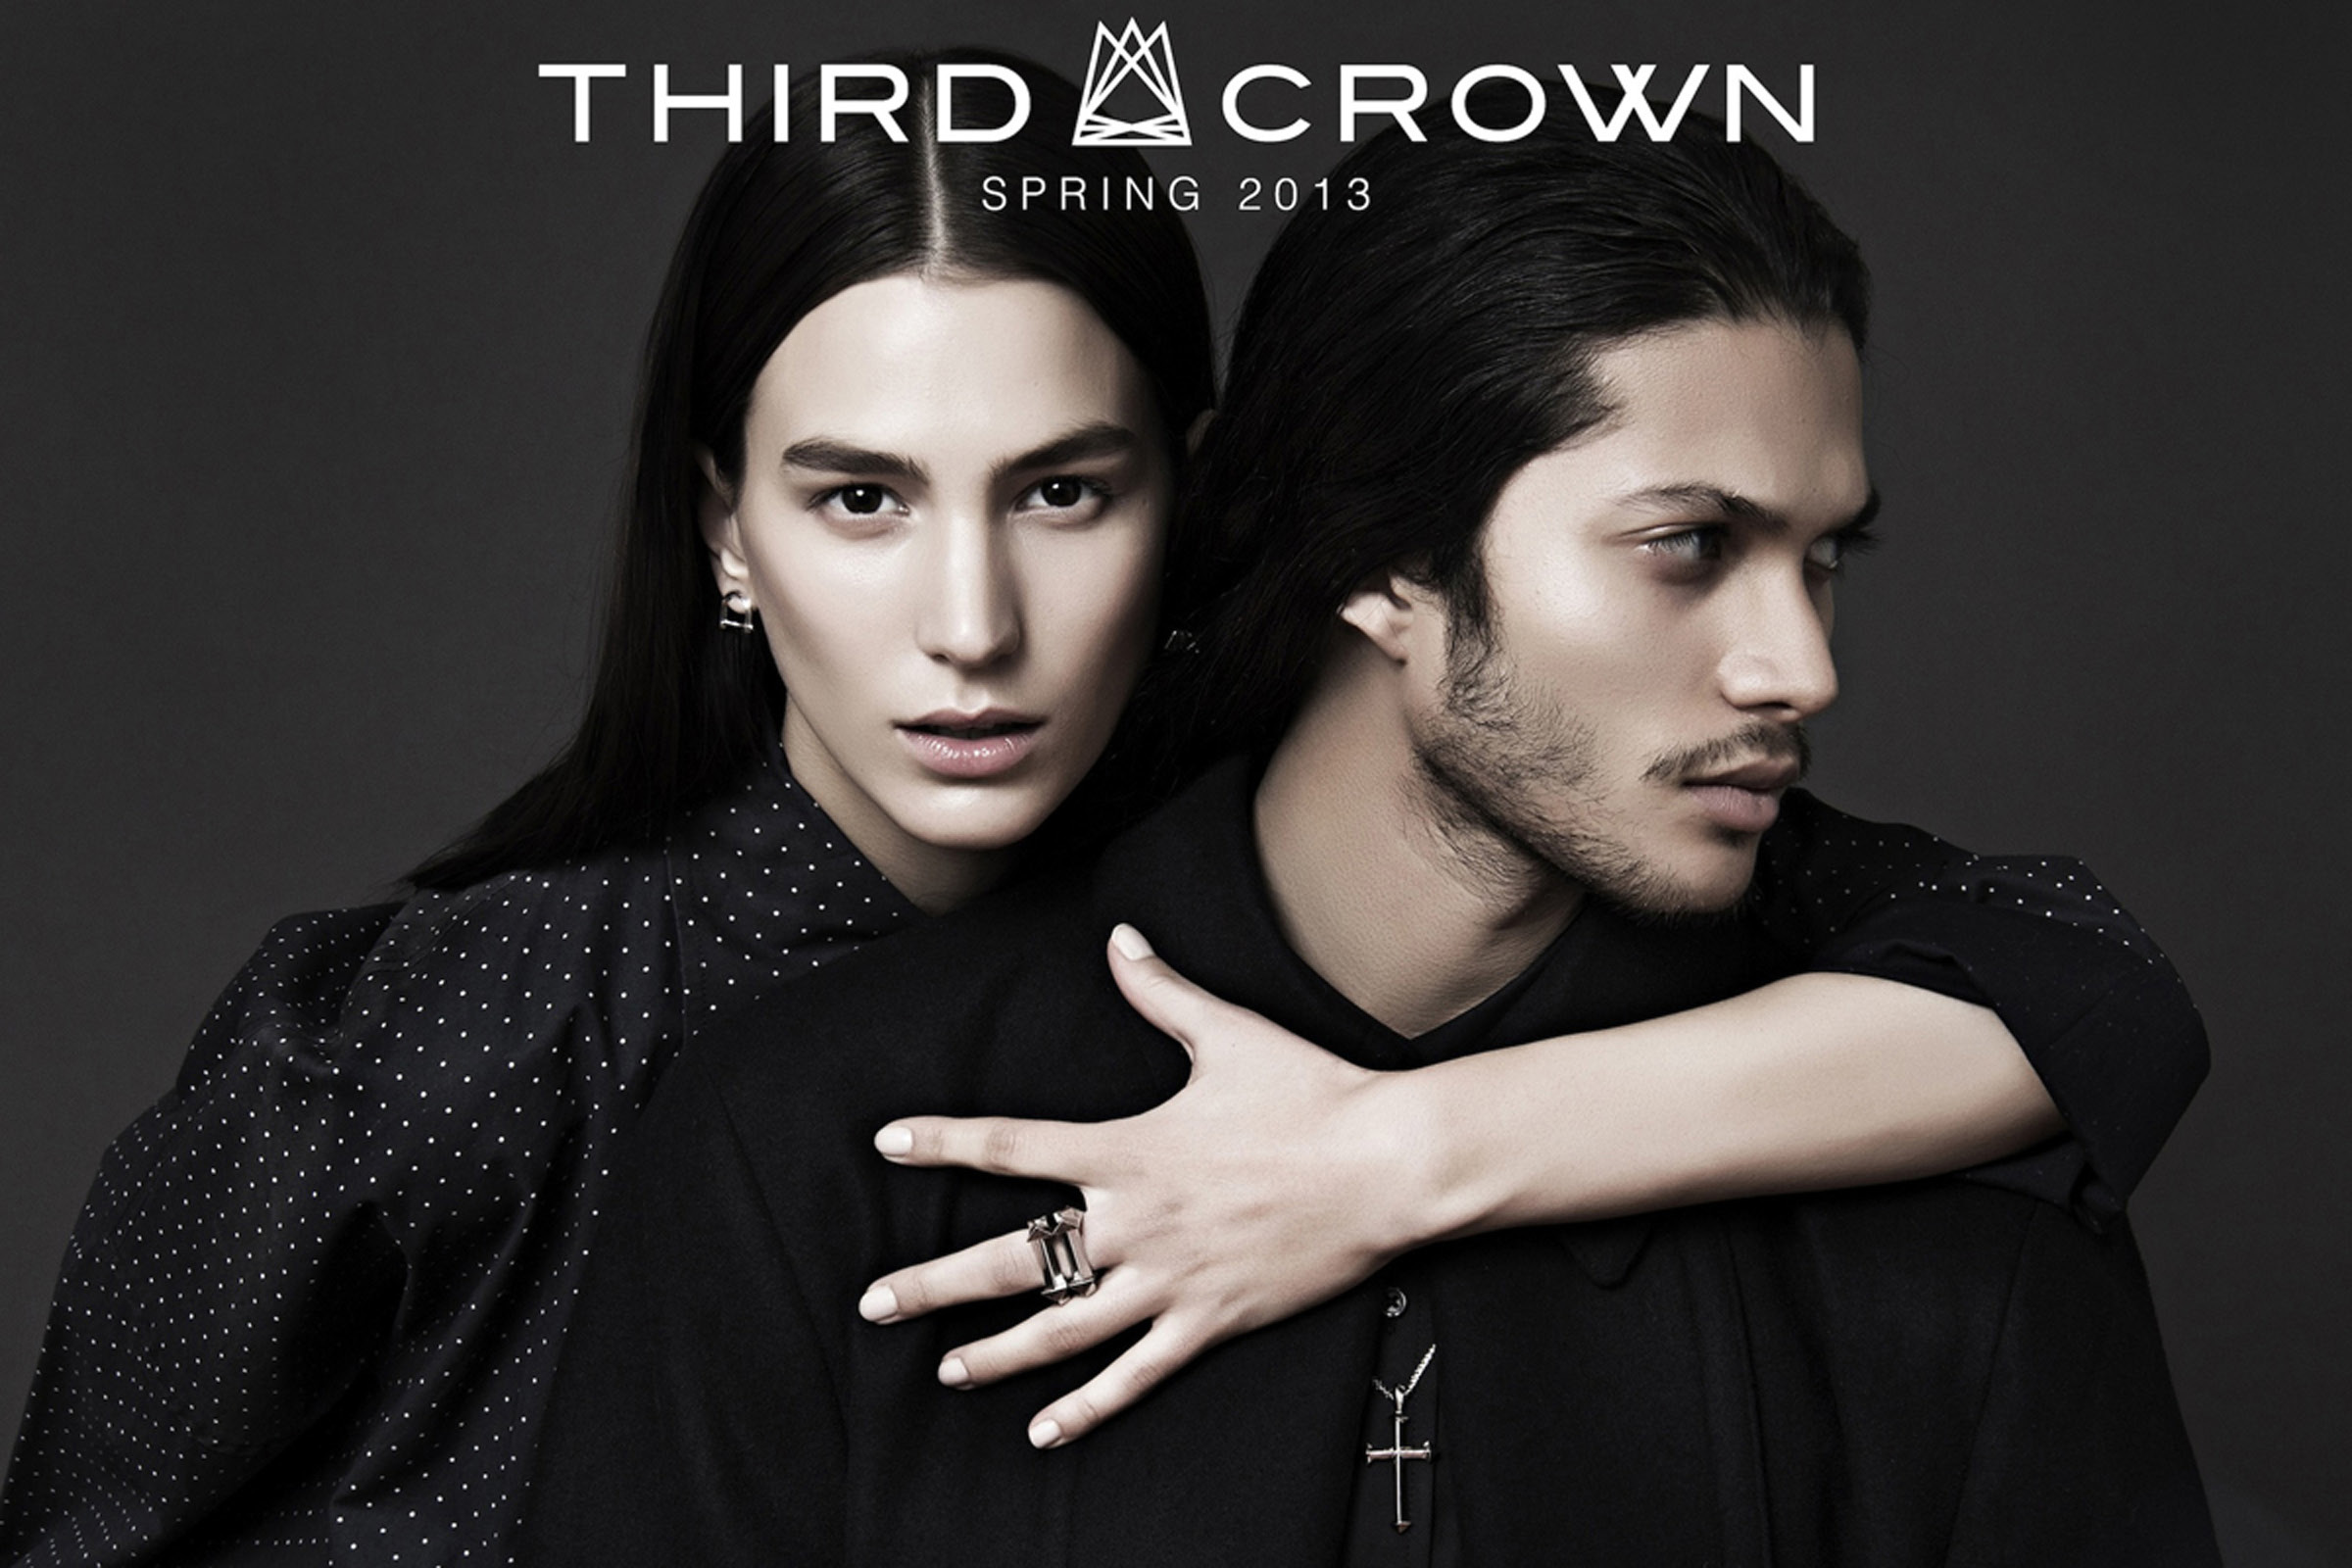 ALL---SPRING-2013-LOOK-BOOK---THIRD-CROWN---RETAIL3-1